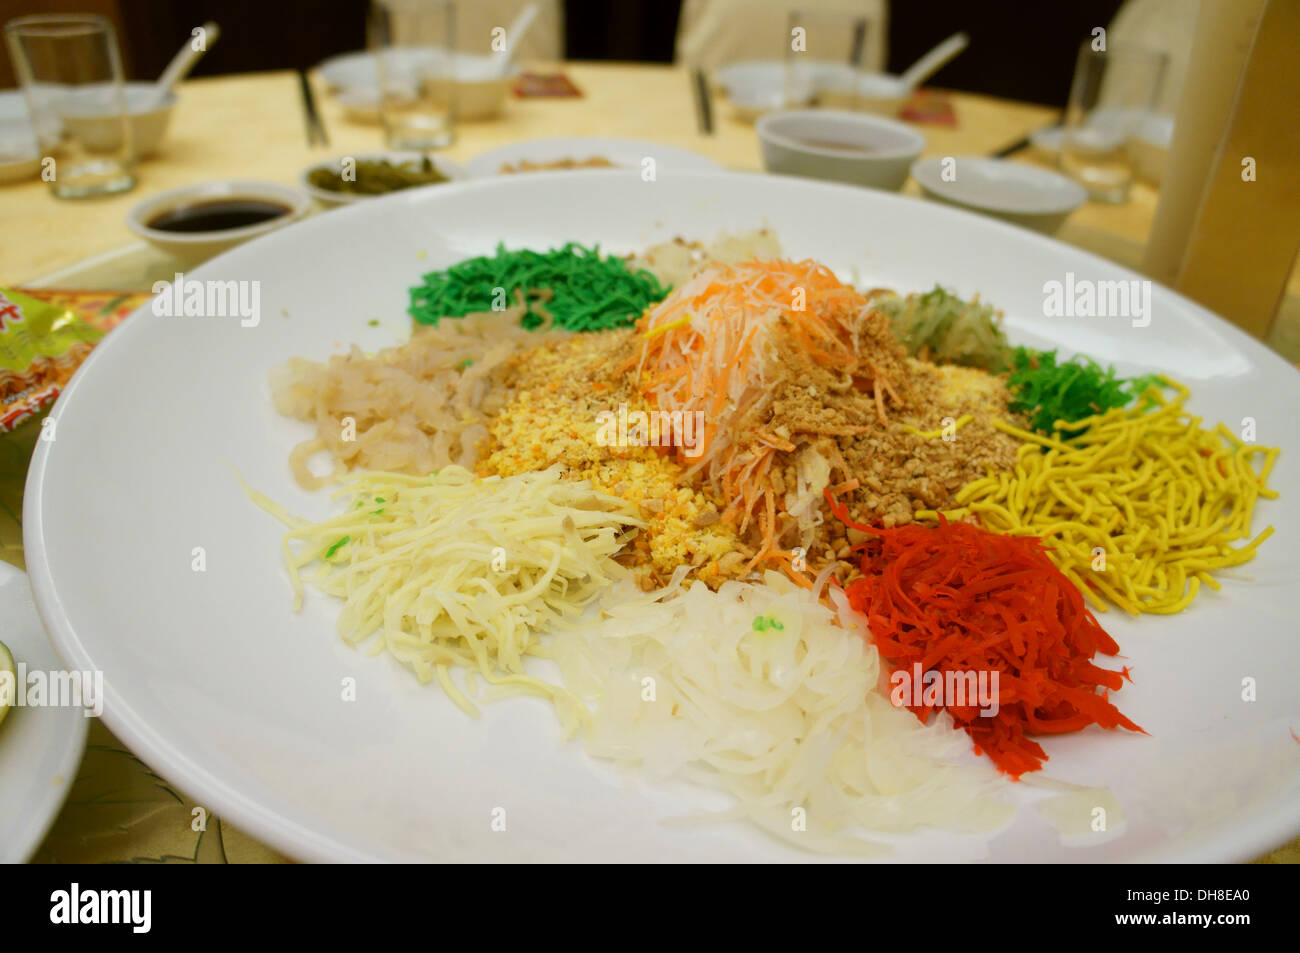 yee sang or prosperity toss, salad with raw fish, to celebrate Chinese new year in South east asian countries - Stock Image